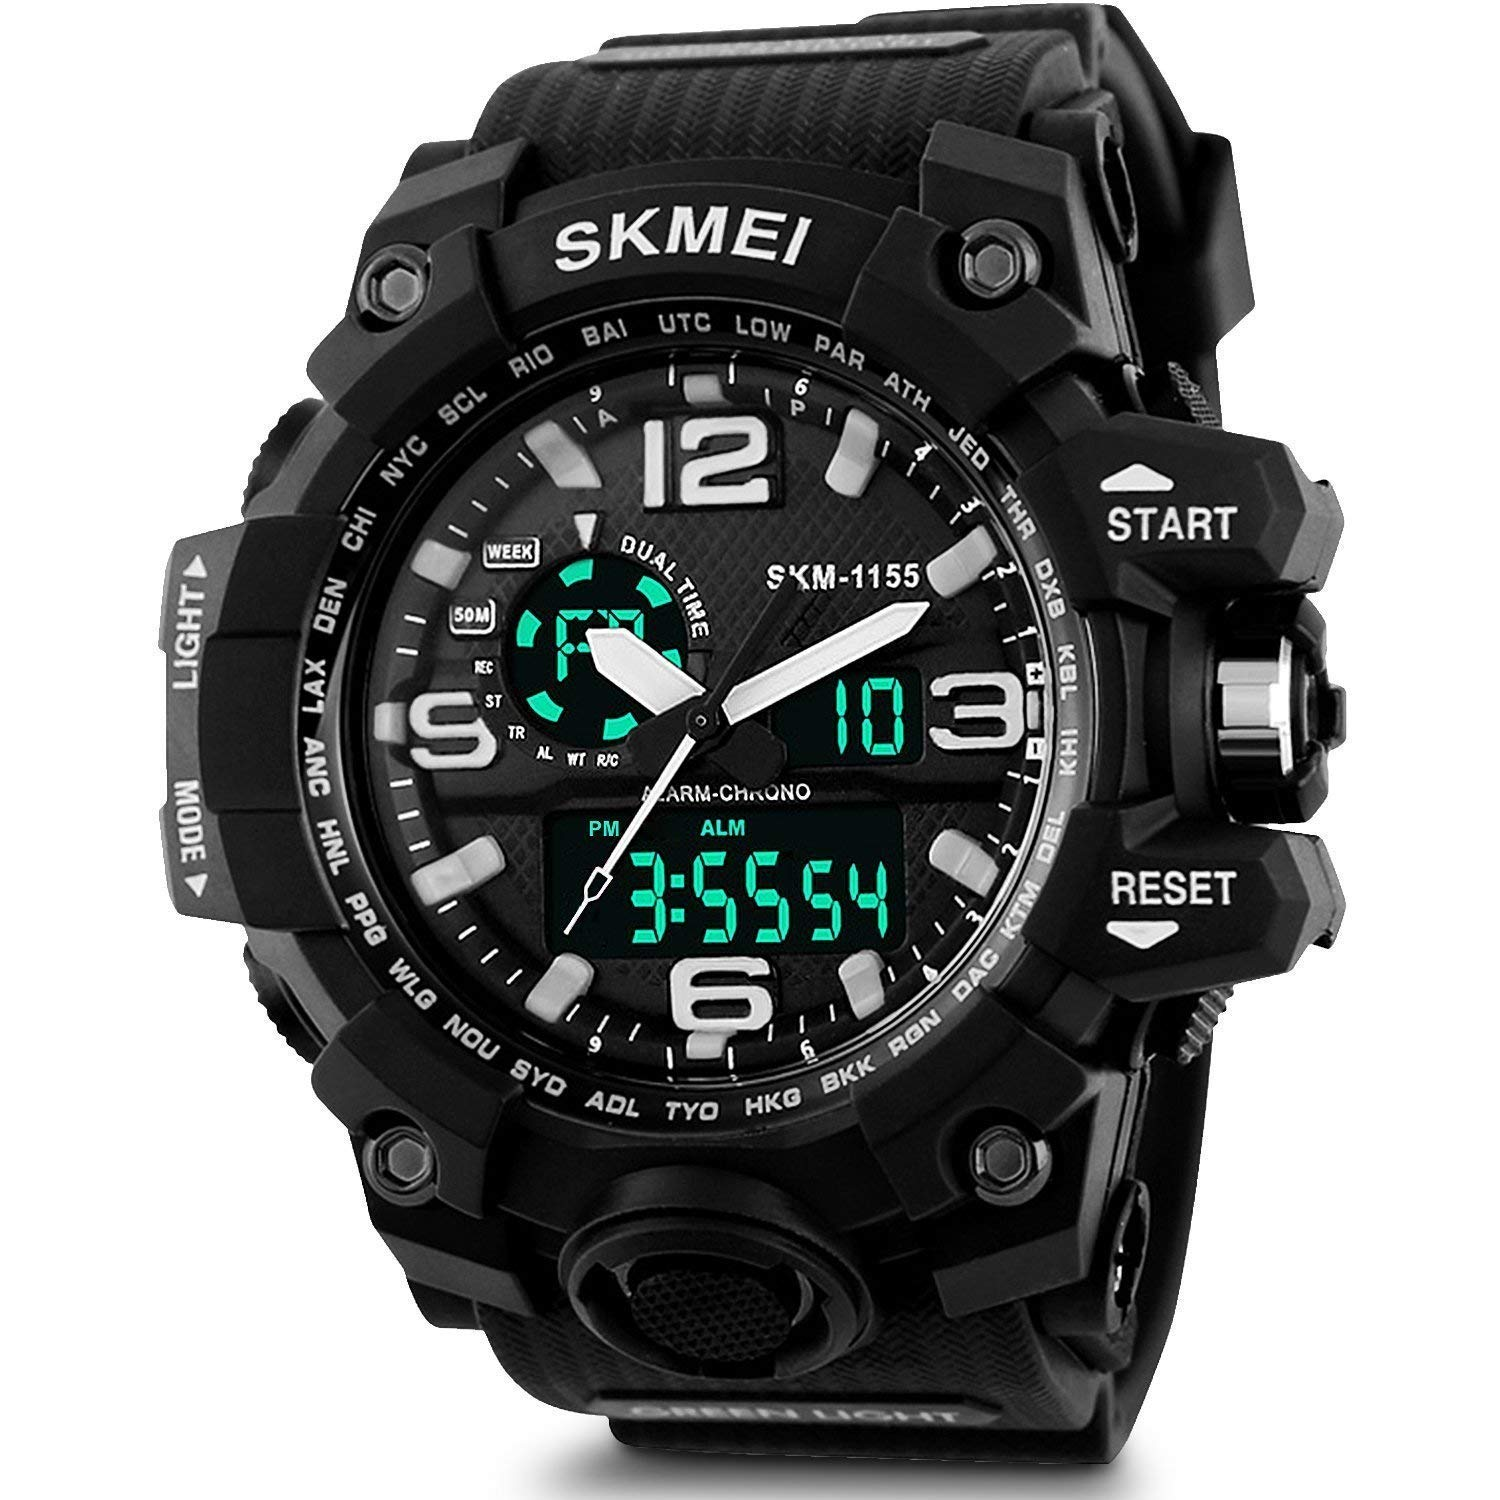 Skmei S-Shock Multi-Functional Analog Digital Sports Watch for Men's & Boys product image